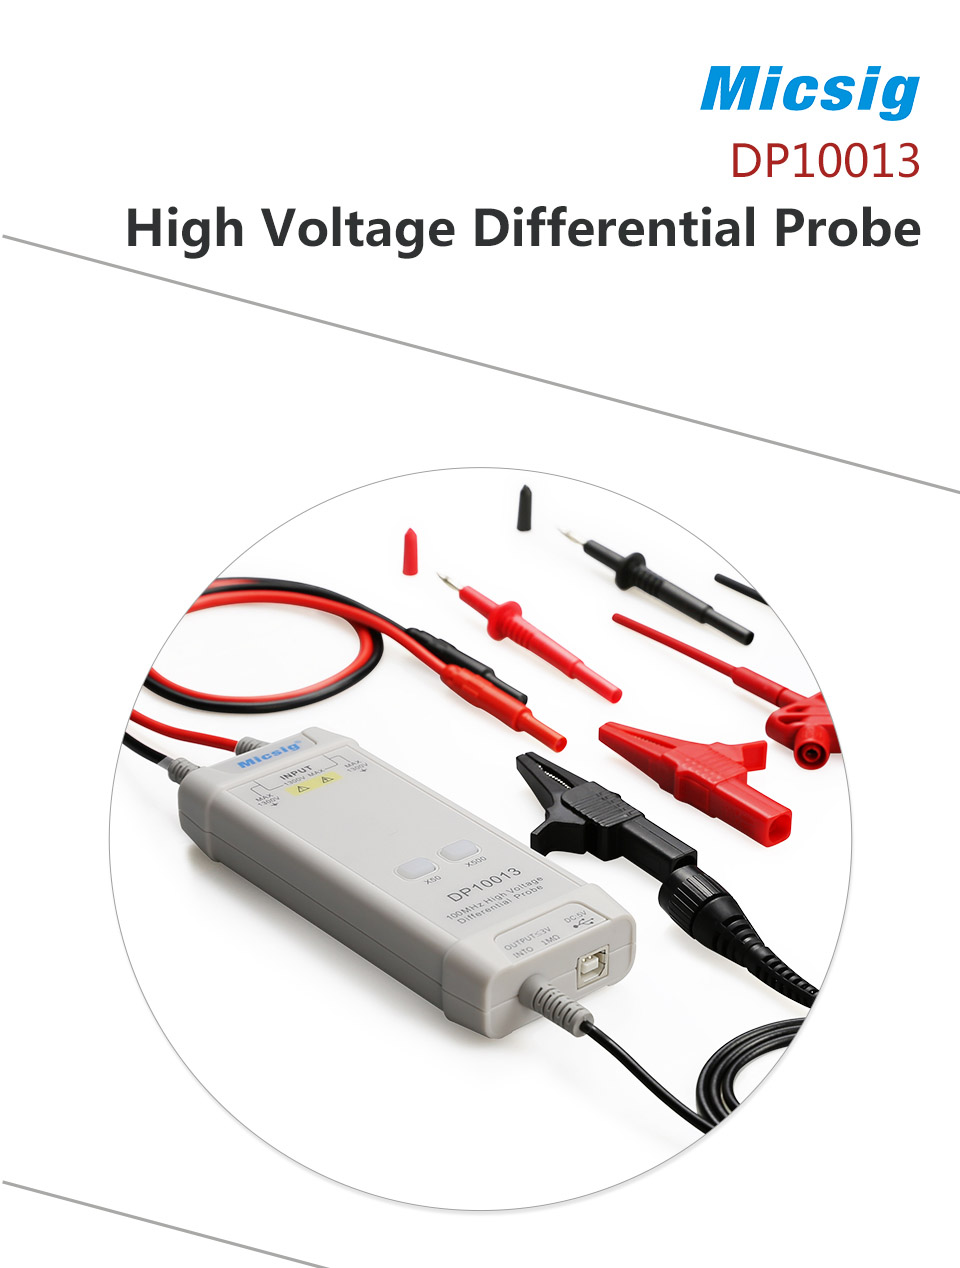 UK 100MHz 50X-500X Oscilloscope High Voltage Differential Probe USB DC5V output